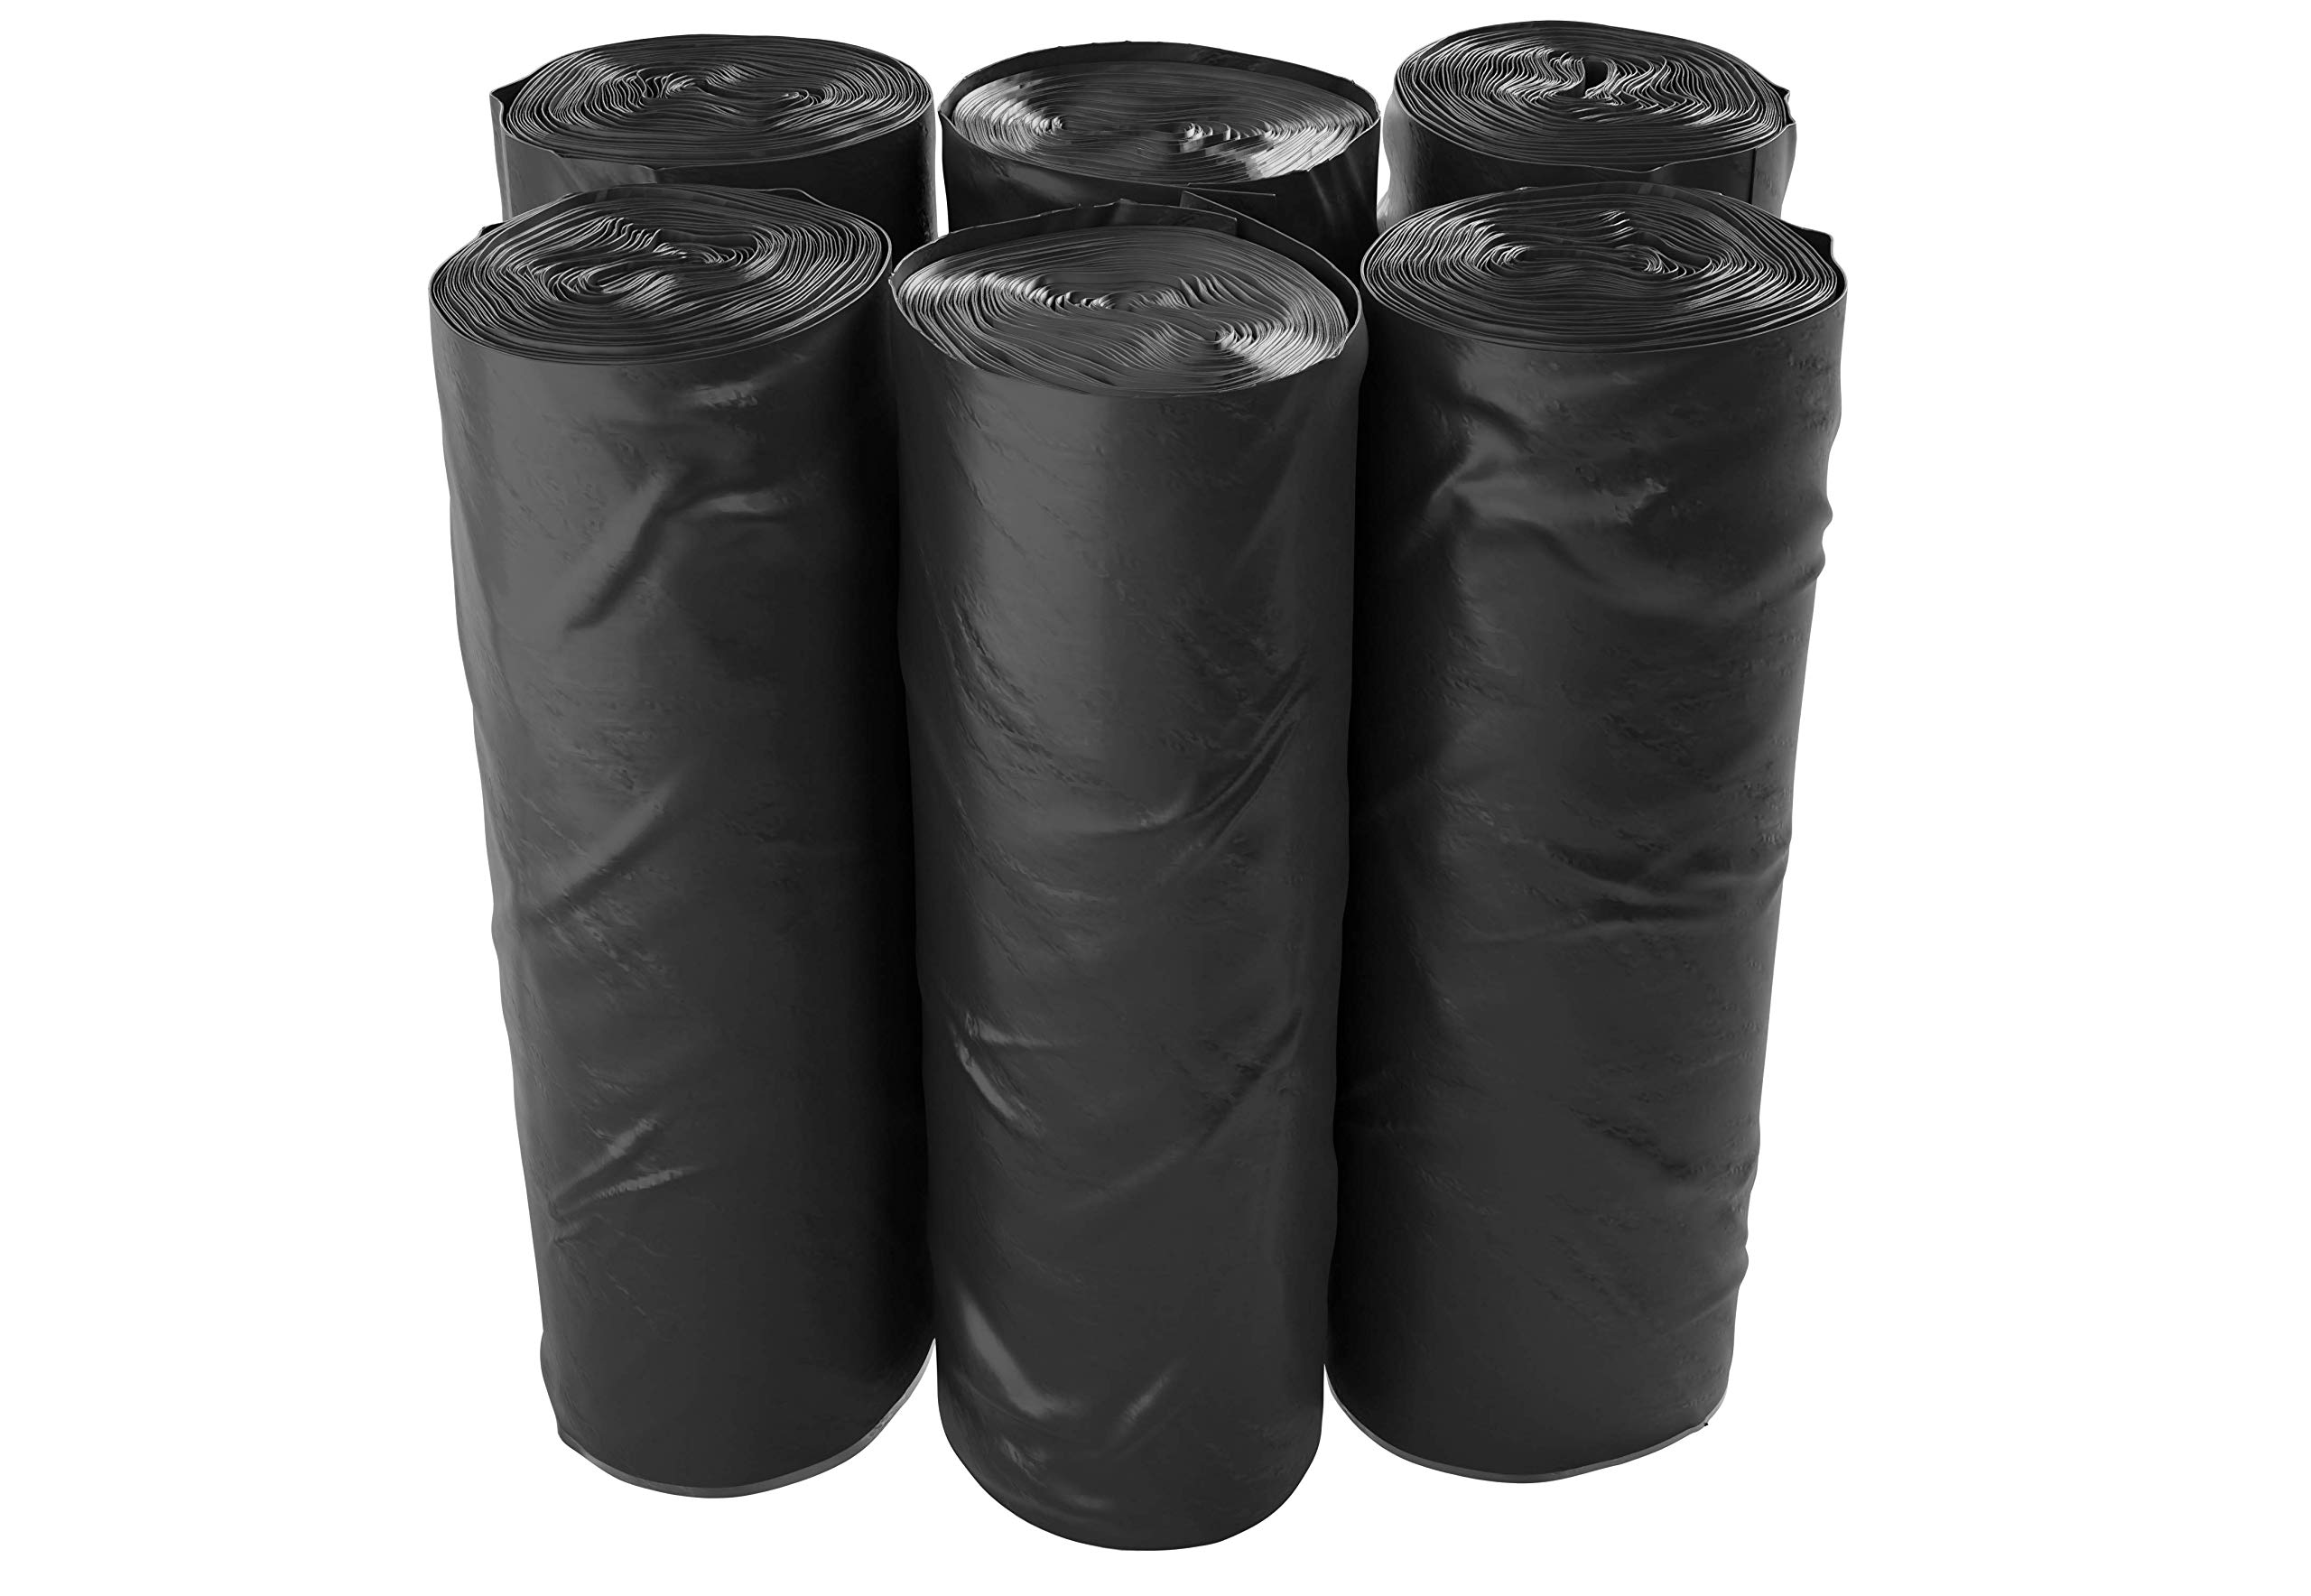 Reli. Premium Thickness Trash Bags, 40-45 Gallon (150 Count) (Black) - Easy Grab Rolls - Can Liners, Garbage Bags with 40 Gallon (40 Gal) to 45 Gallon (45 Gal) Capacity by Reli. (Image #3)